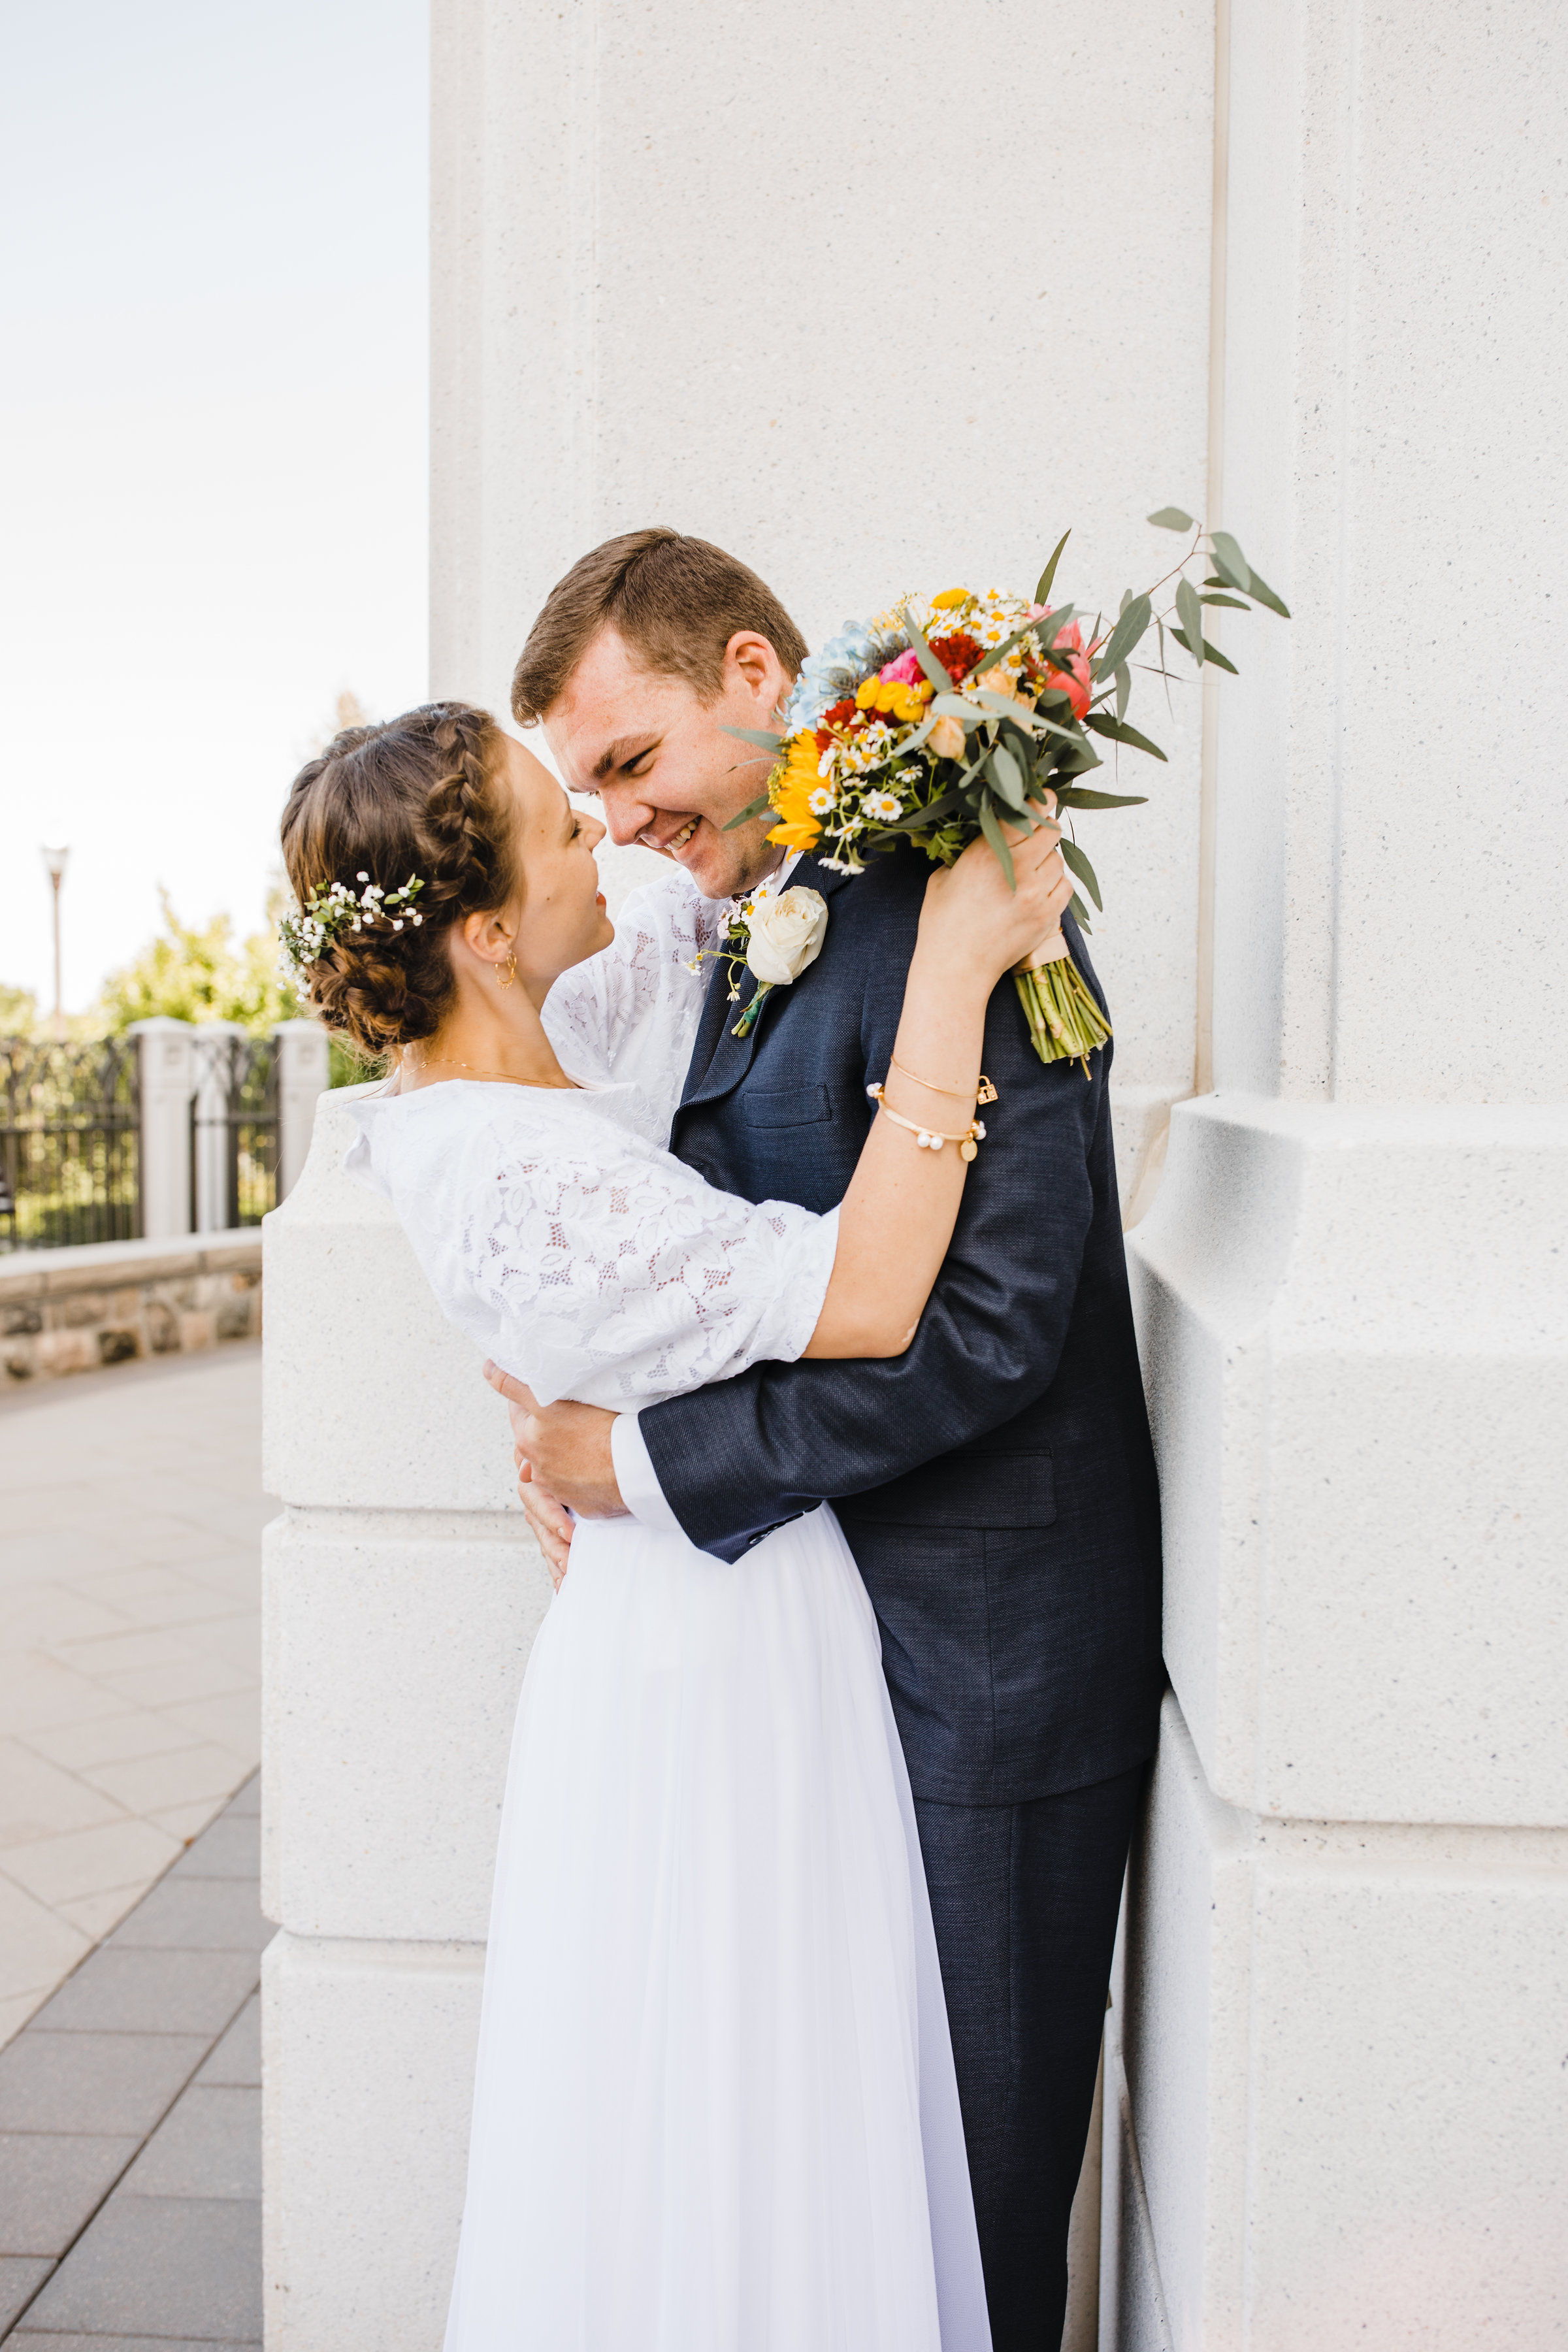 Professional Wedding Photographer in Brigham City Utah LDS Temple Wedding wedding hair